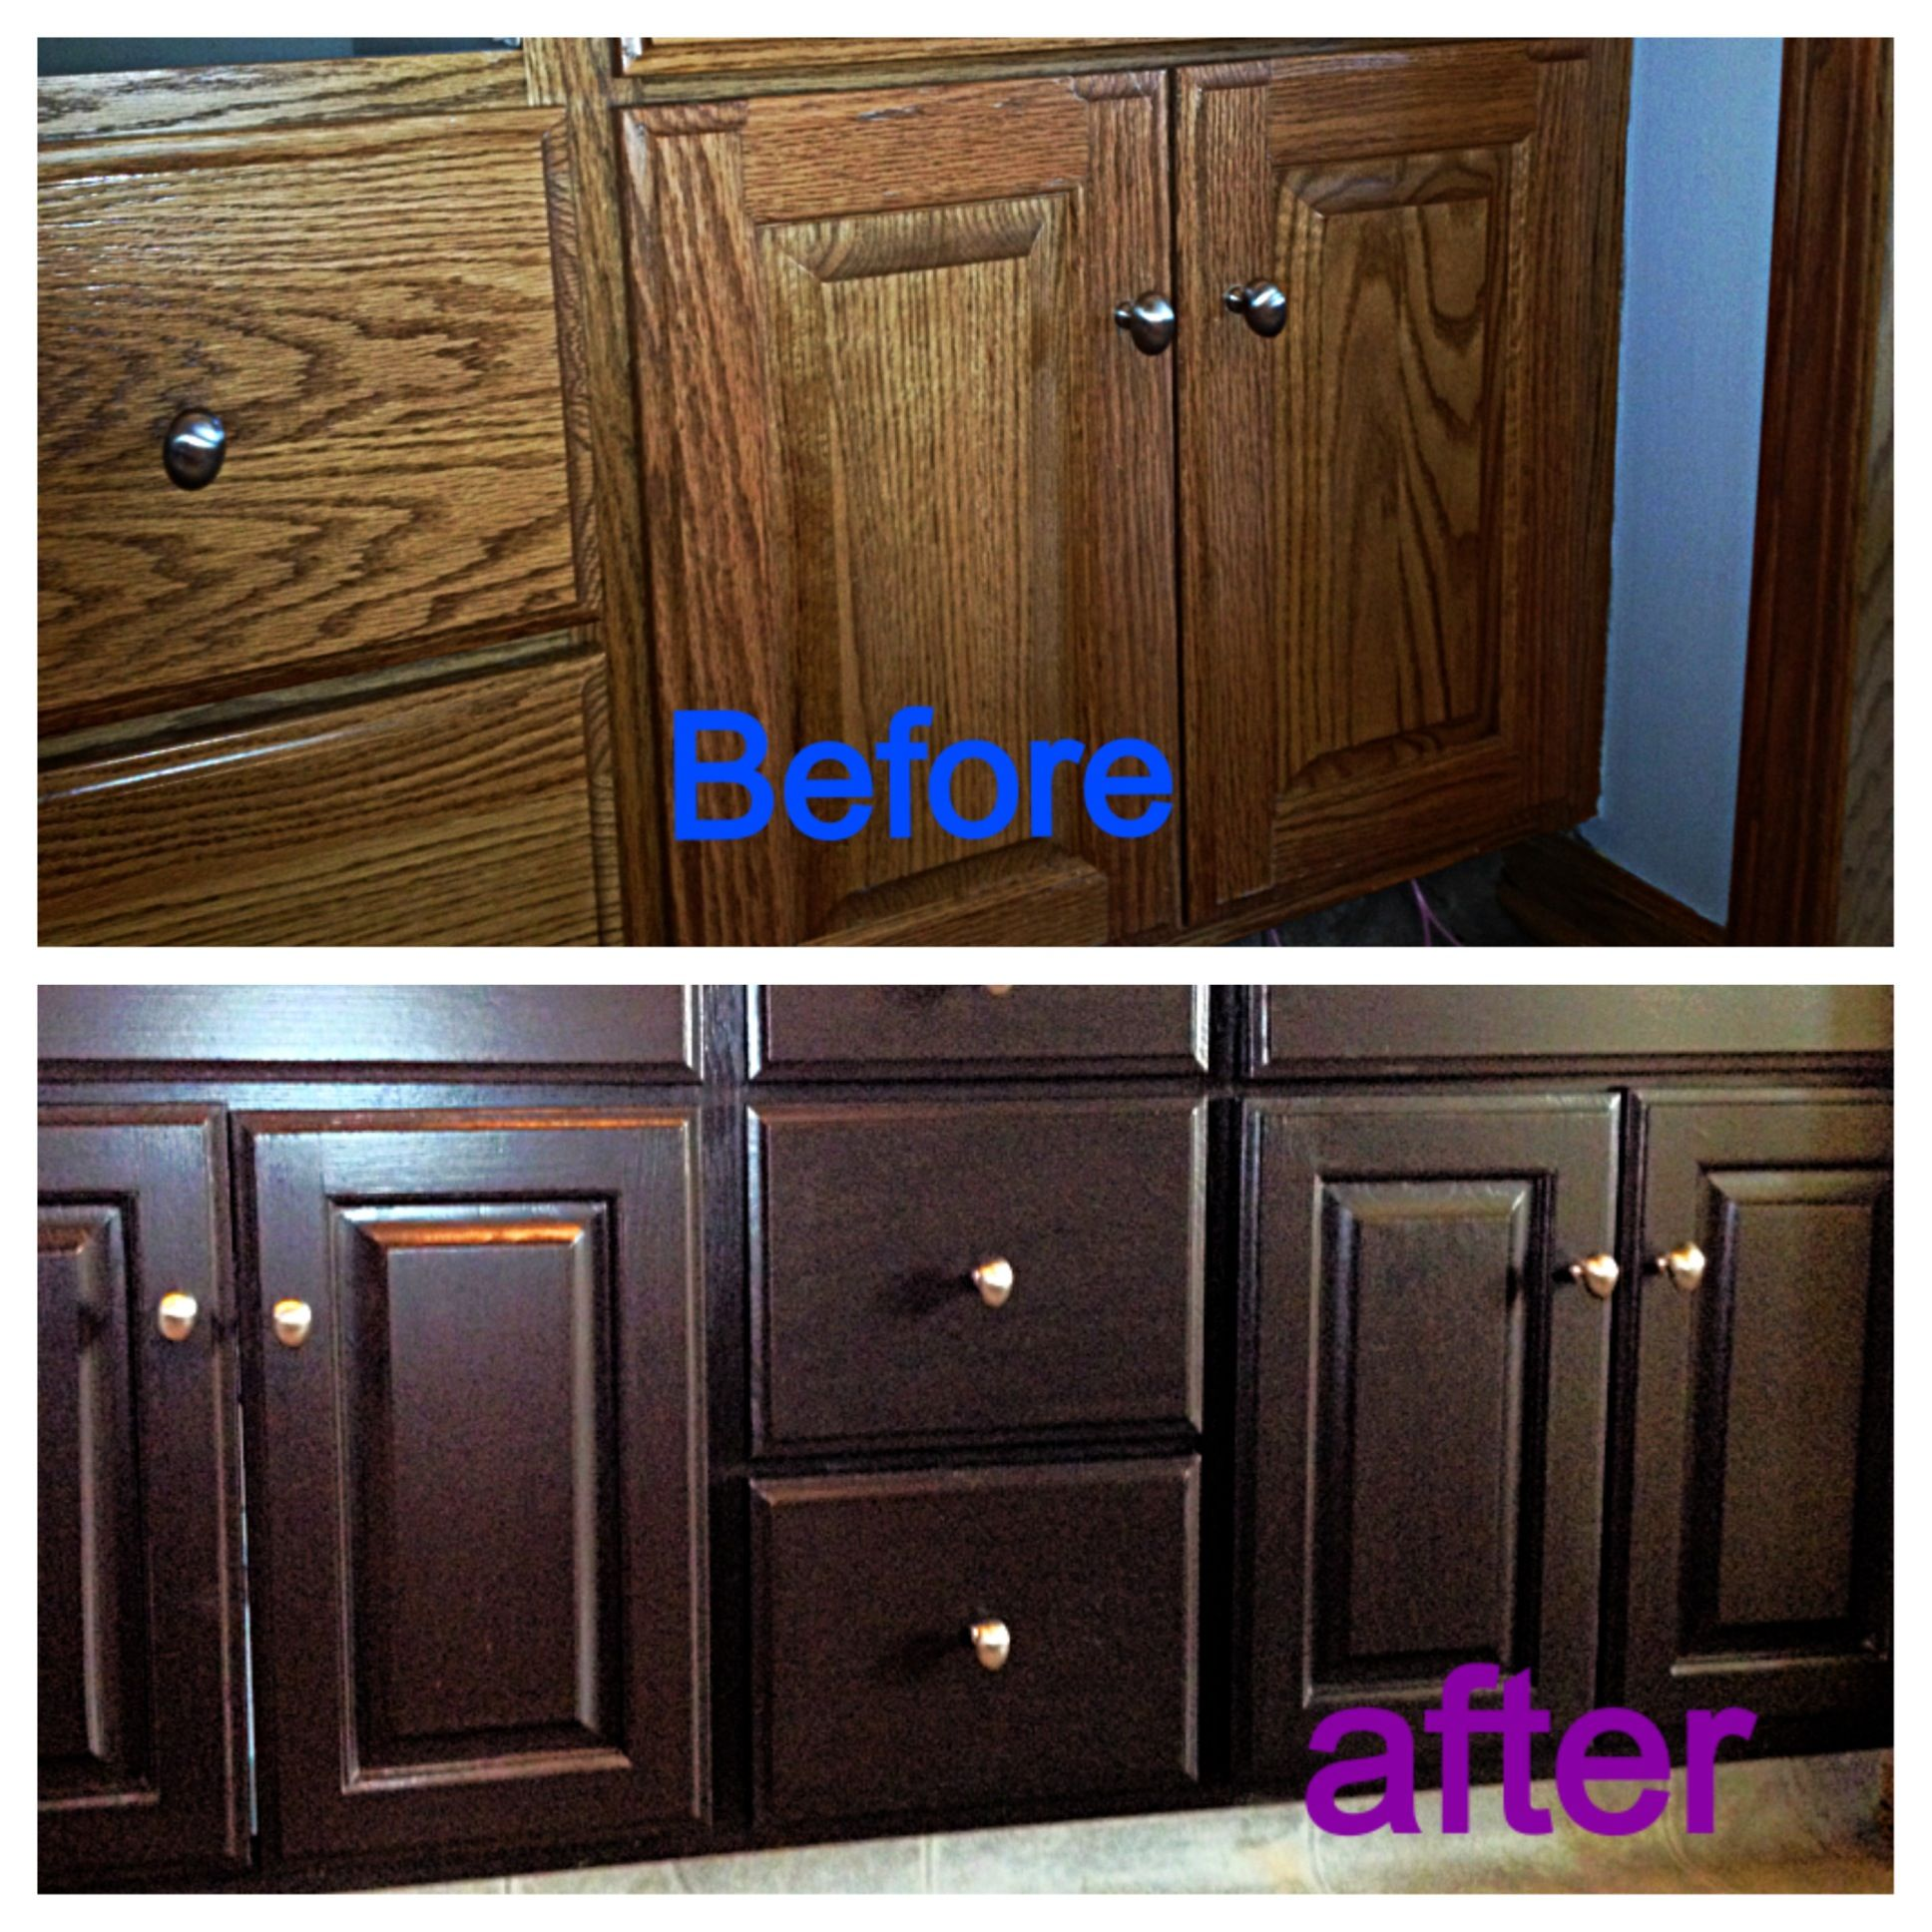 Refinished Without Any Sanding Rustoleum Cabinet Transformations Kit From Lowes Painted Furniture Rustoleum Cabinet Rustoleum Cabinet Transformation